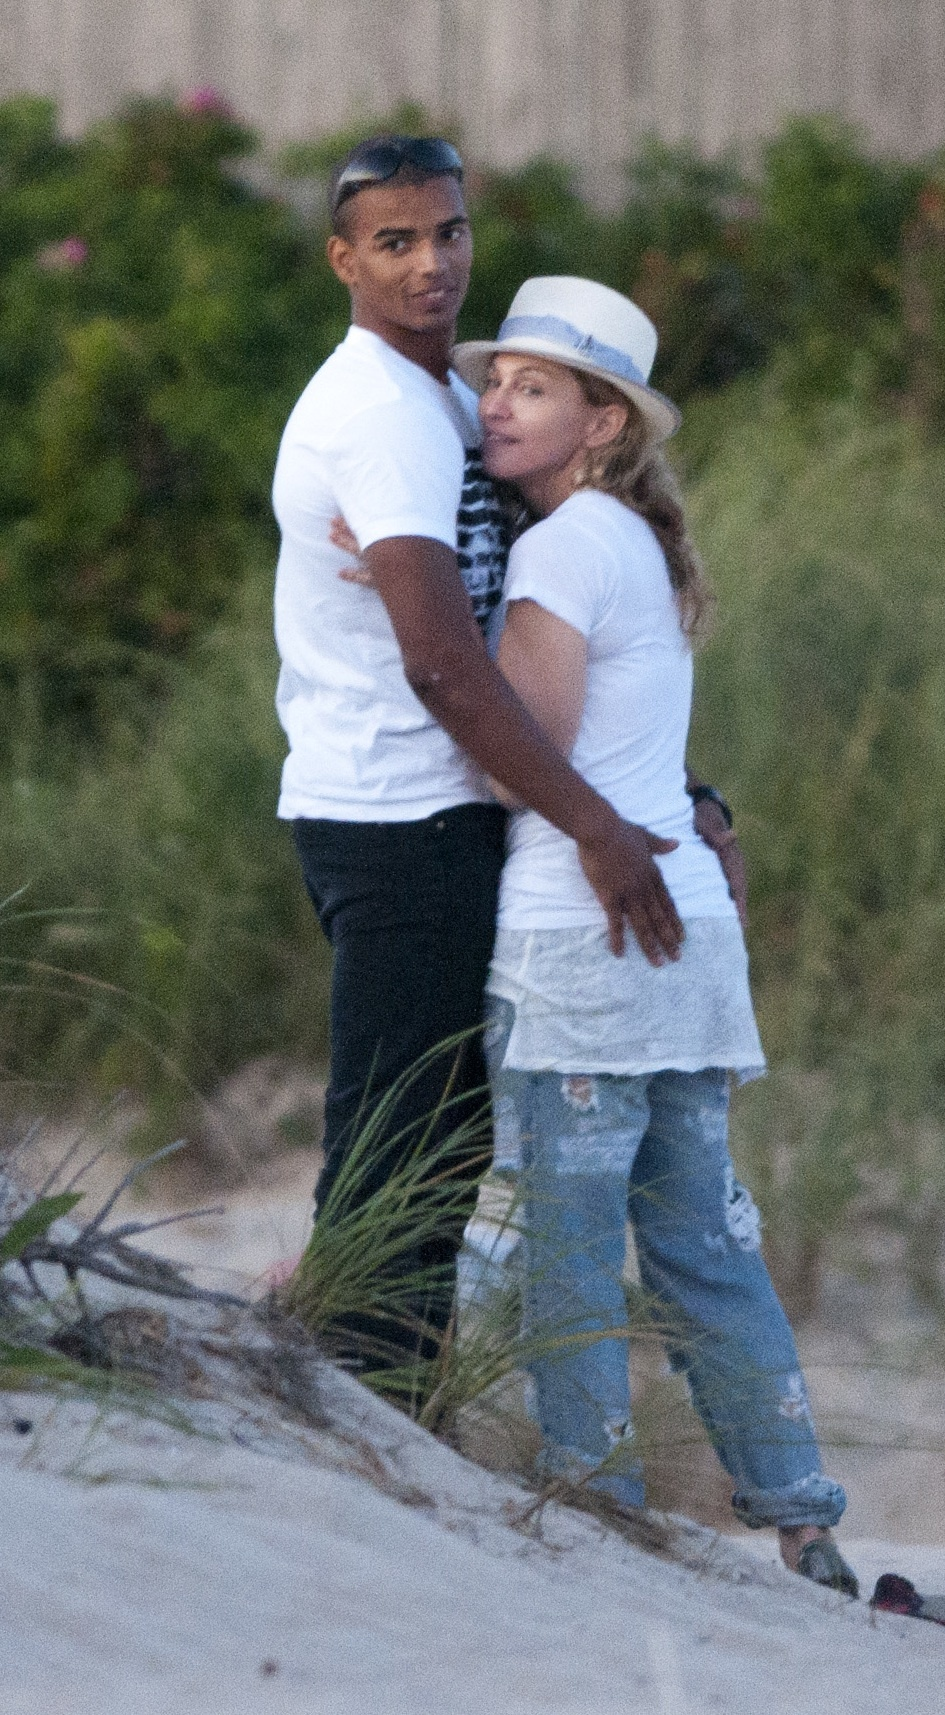 Madonna and younger man